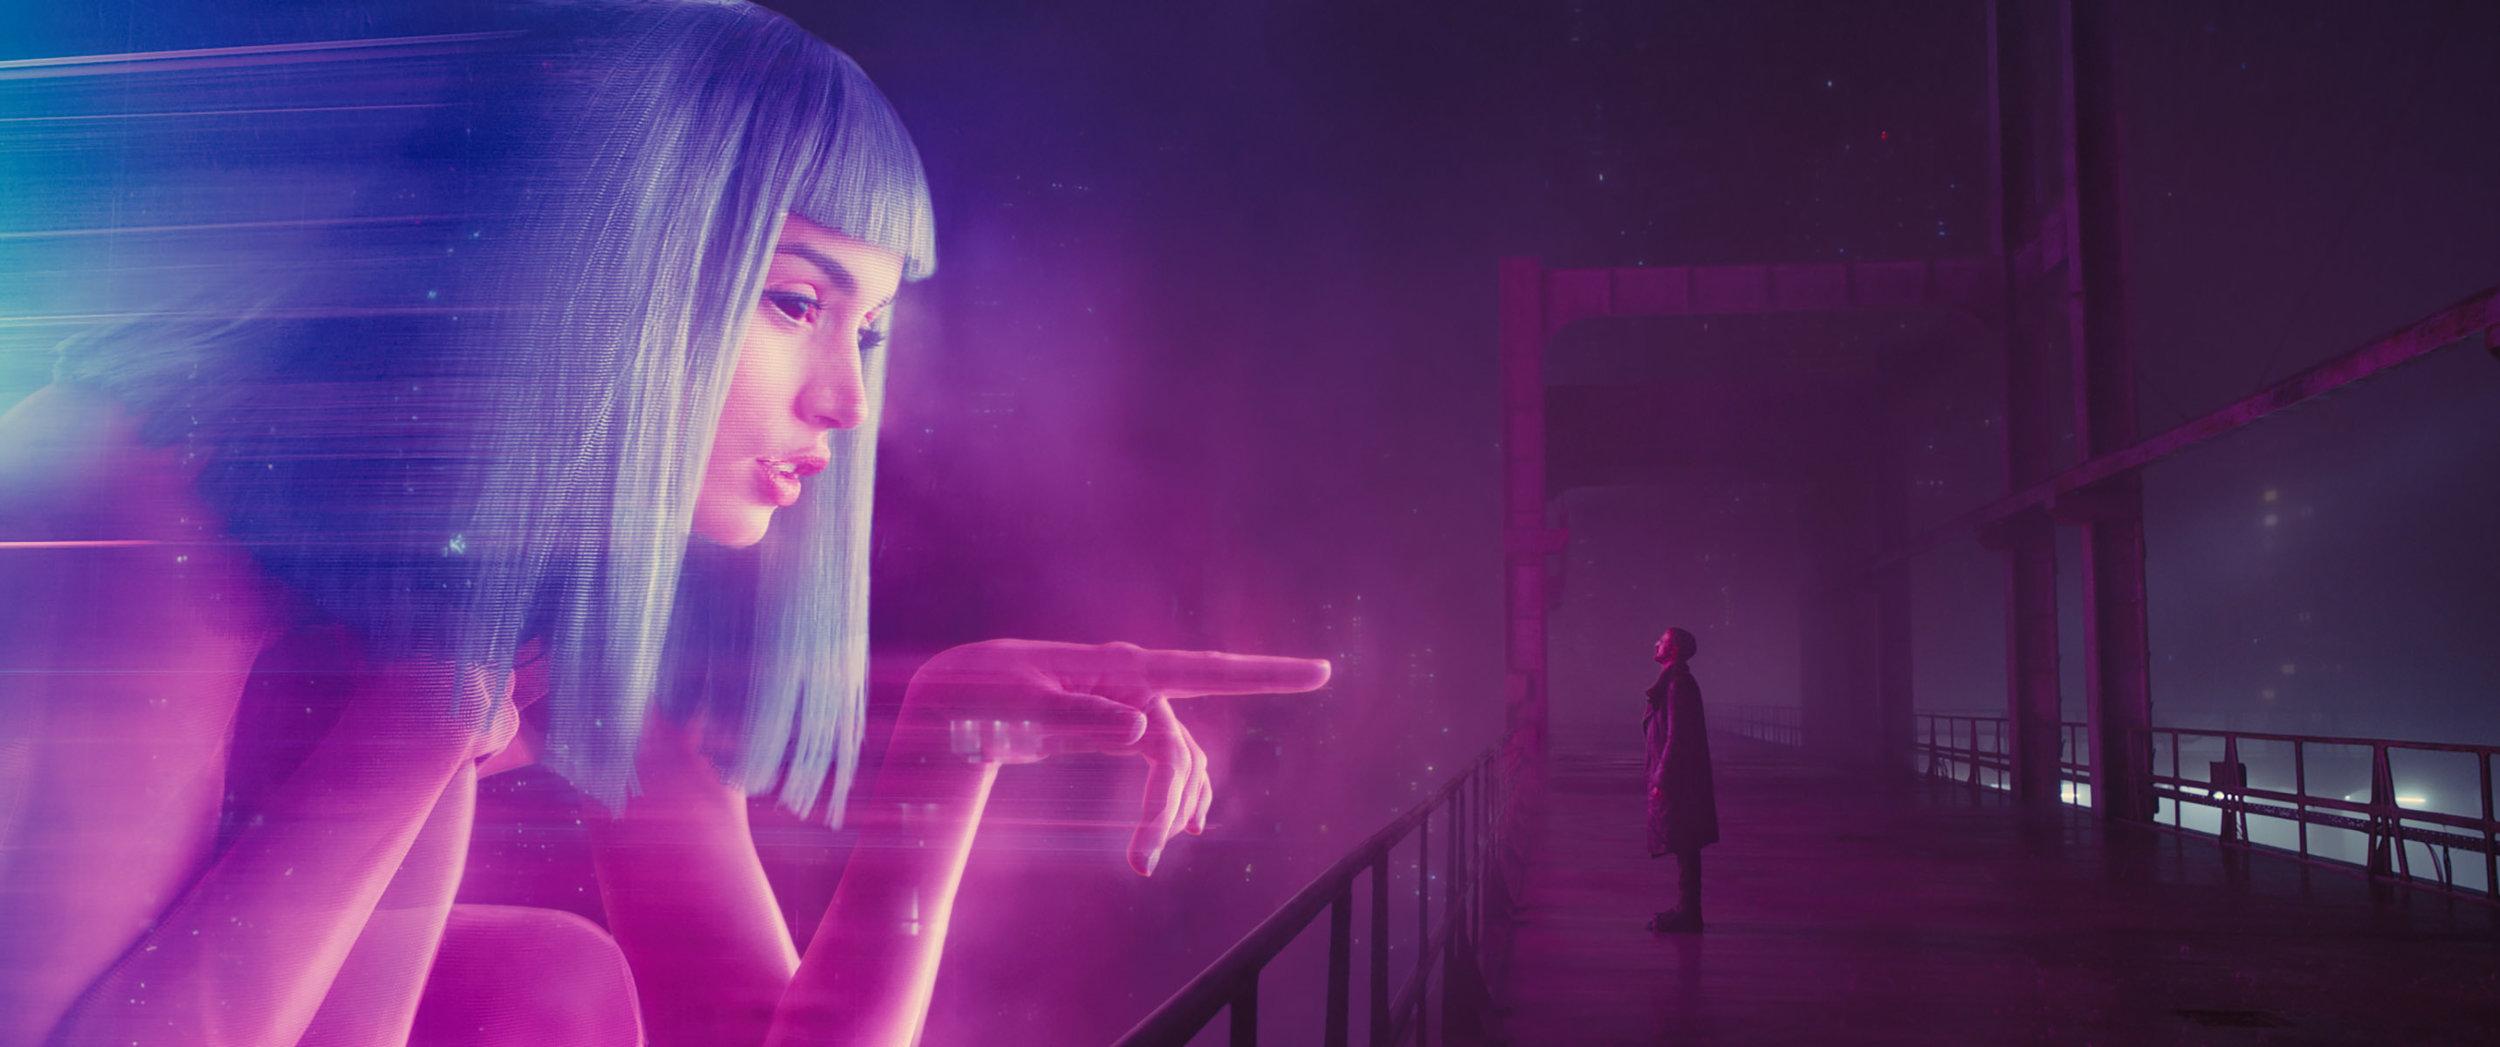 Most women in  Blade Runner 2049  lack agency and only serve the interests of men.